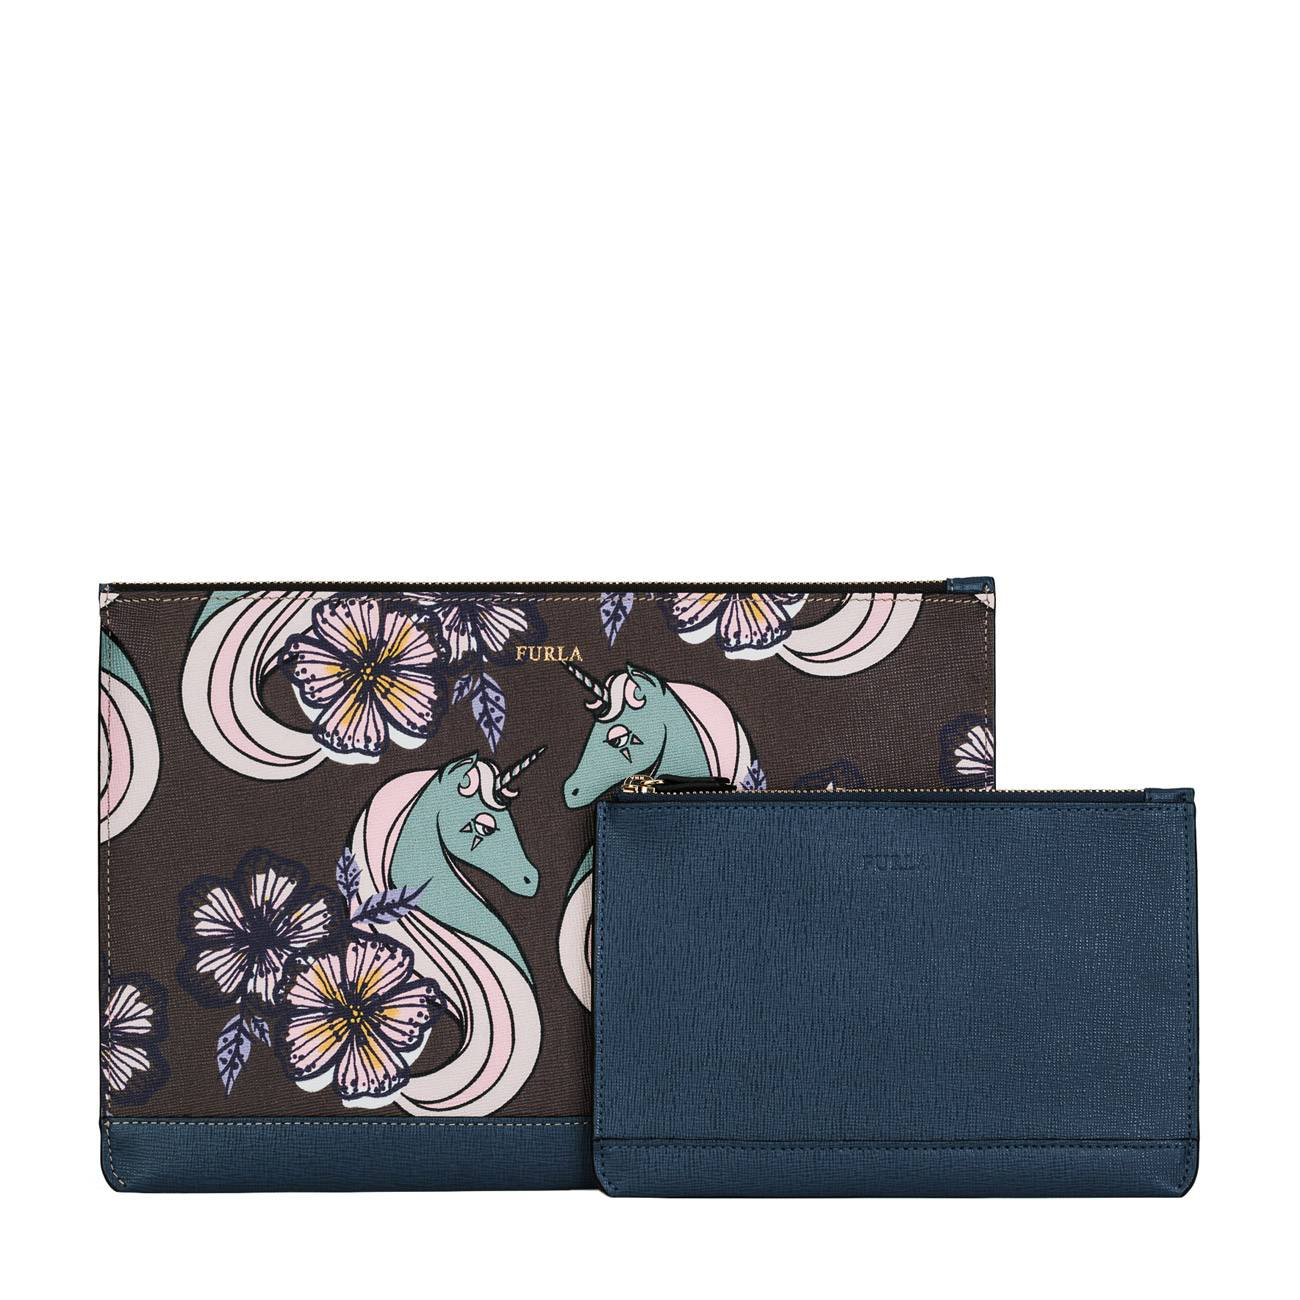 GIOIA COSMETIC BAG SET